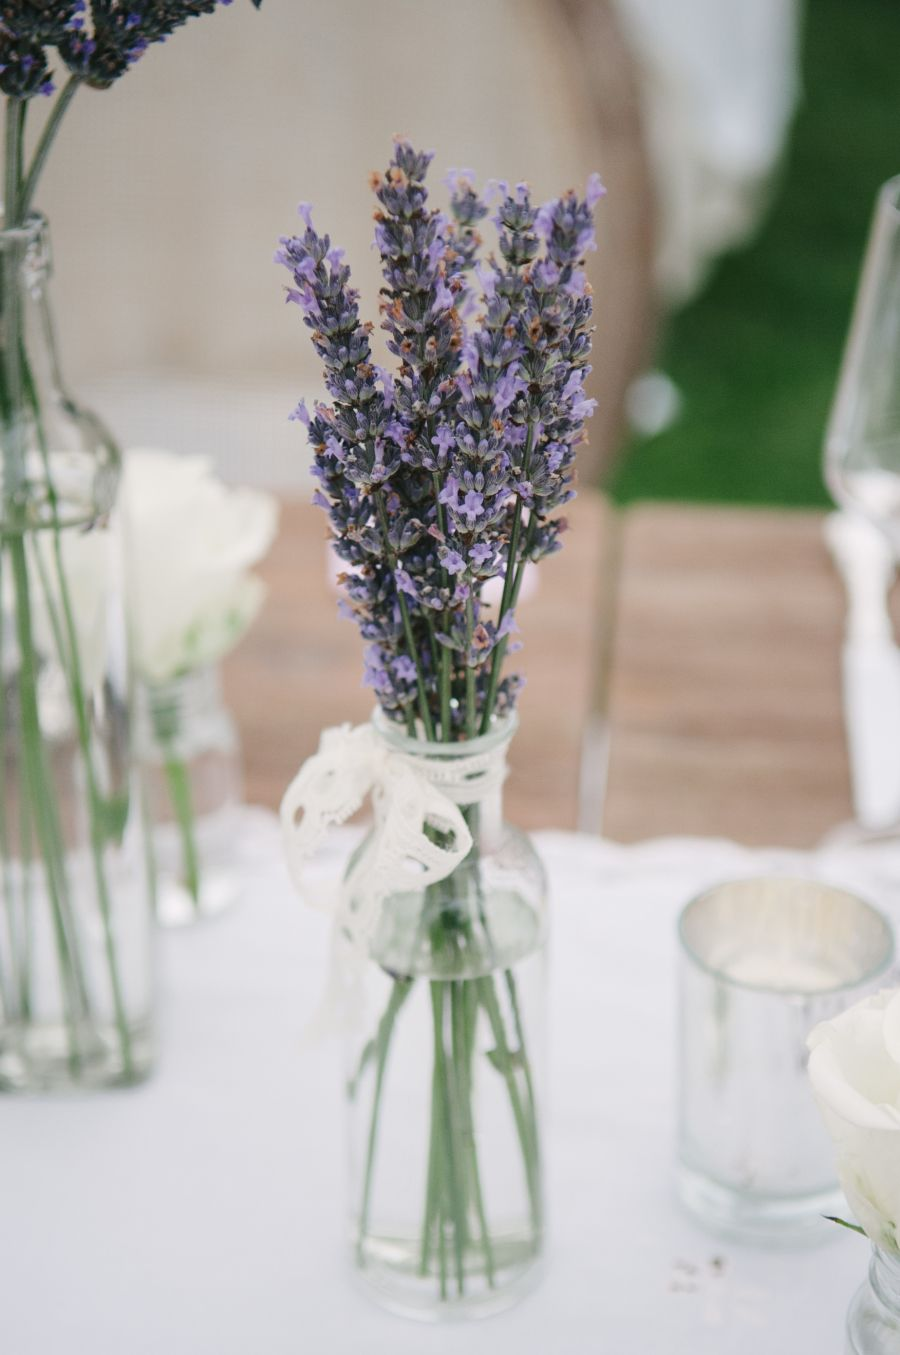 Romantic Elegance at Bel Air Private Estate is part of Lavender wedding centerpieces - This wedding is just  too  pretty to put into words  Thankfully, I can let the sweet Bride & Groom do most of the speaking with their heartfelt vows in the breathtaking film fromCouture Motion Pictu